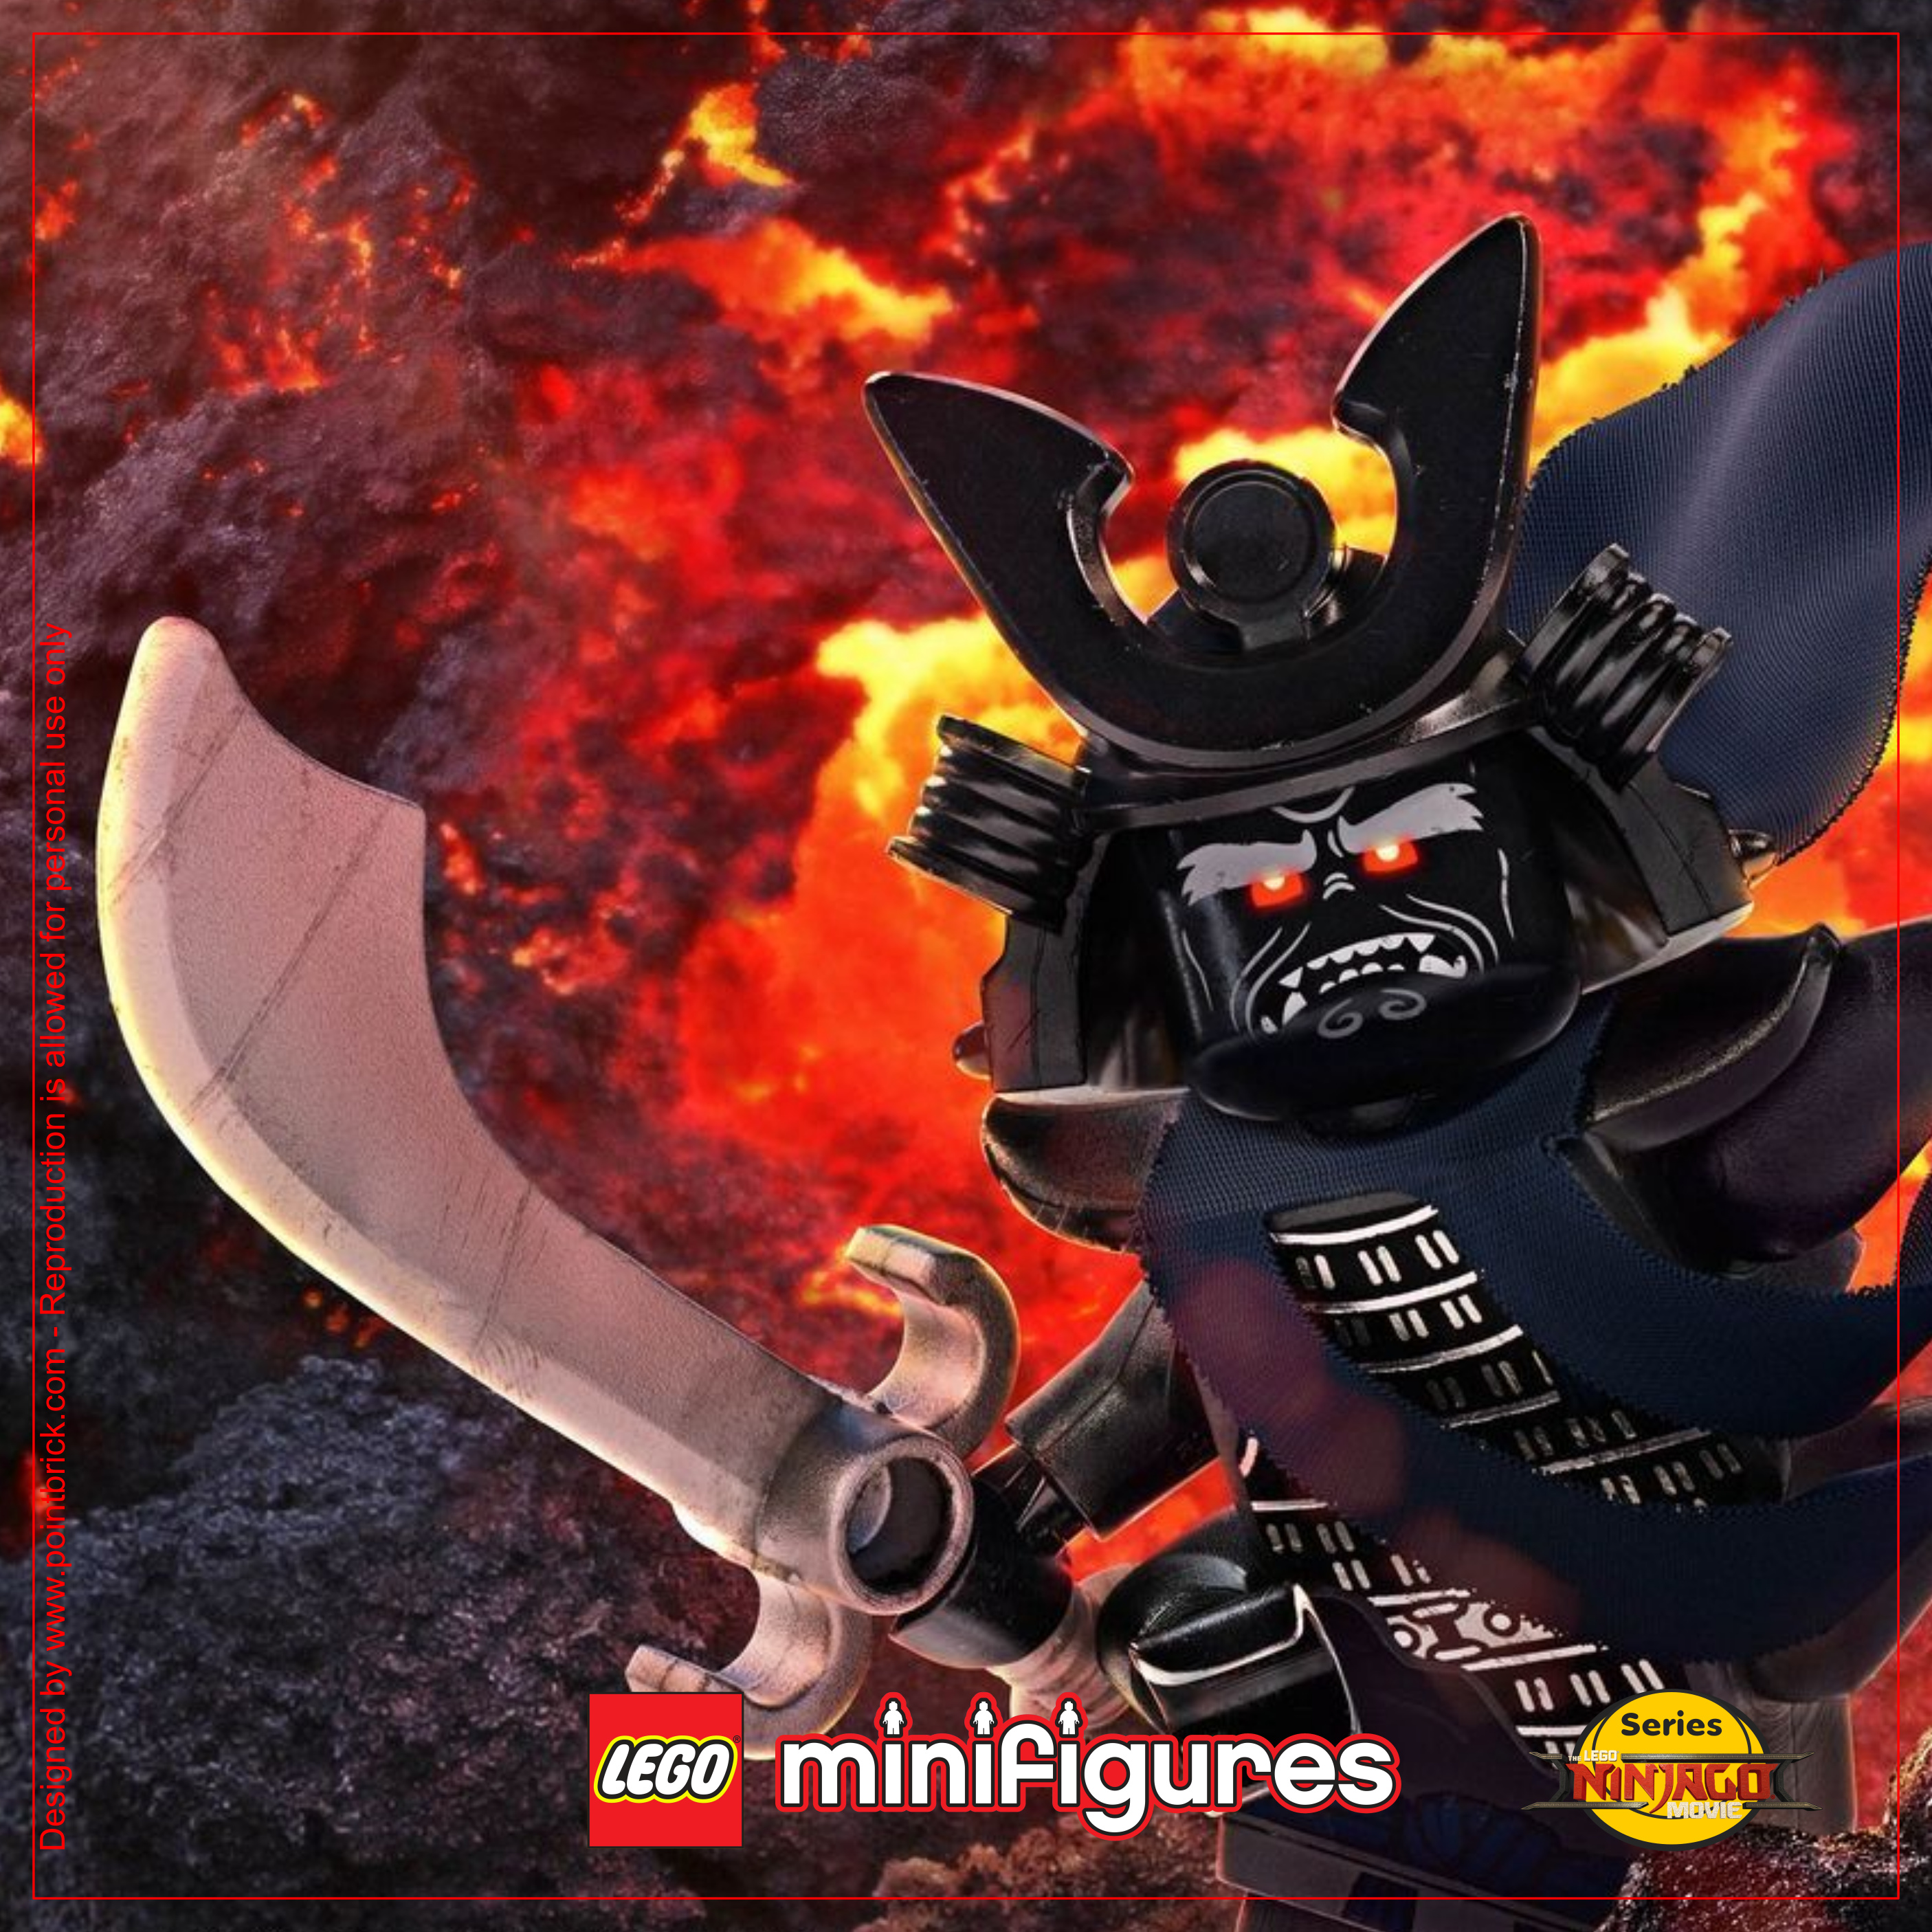 LEGO Minifigures 71019 The LEGO Ninjago Movie Garmadon - Display Frame Background 230mm plain - Clicca sull'immagine per scaricarla gratuitamente!